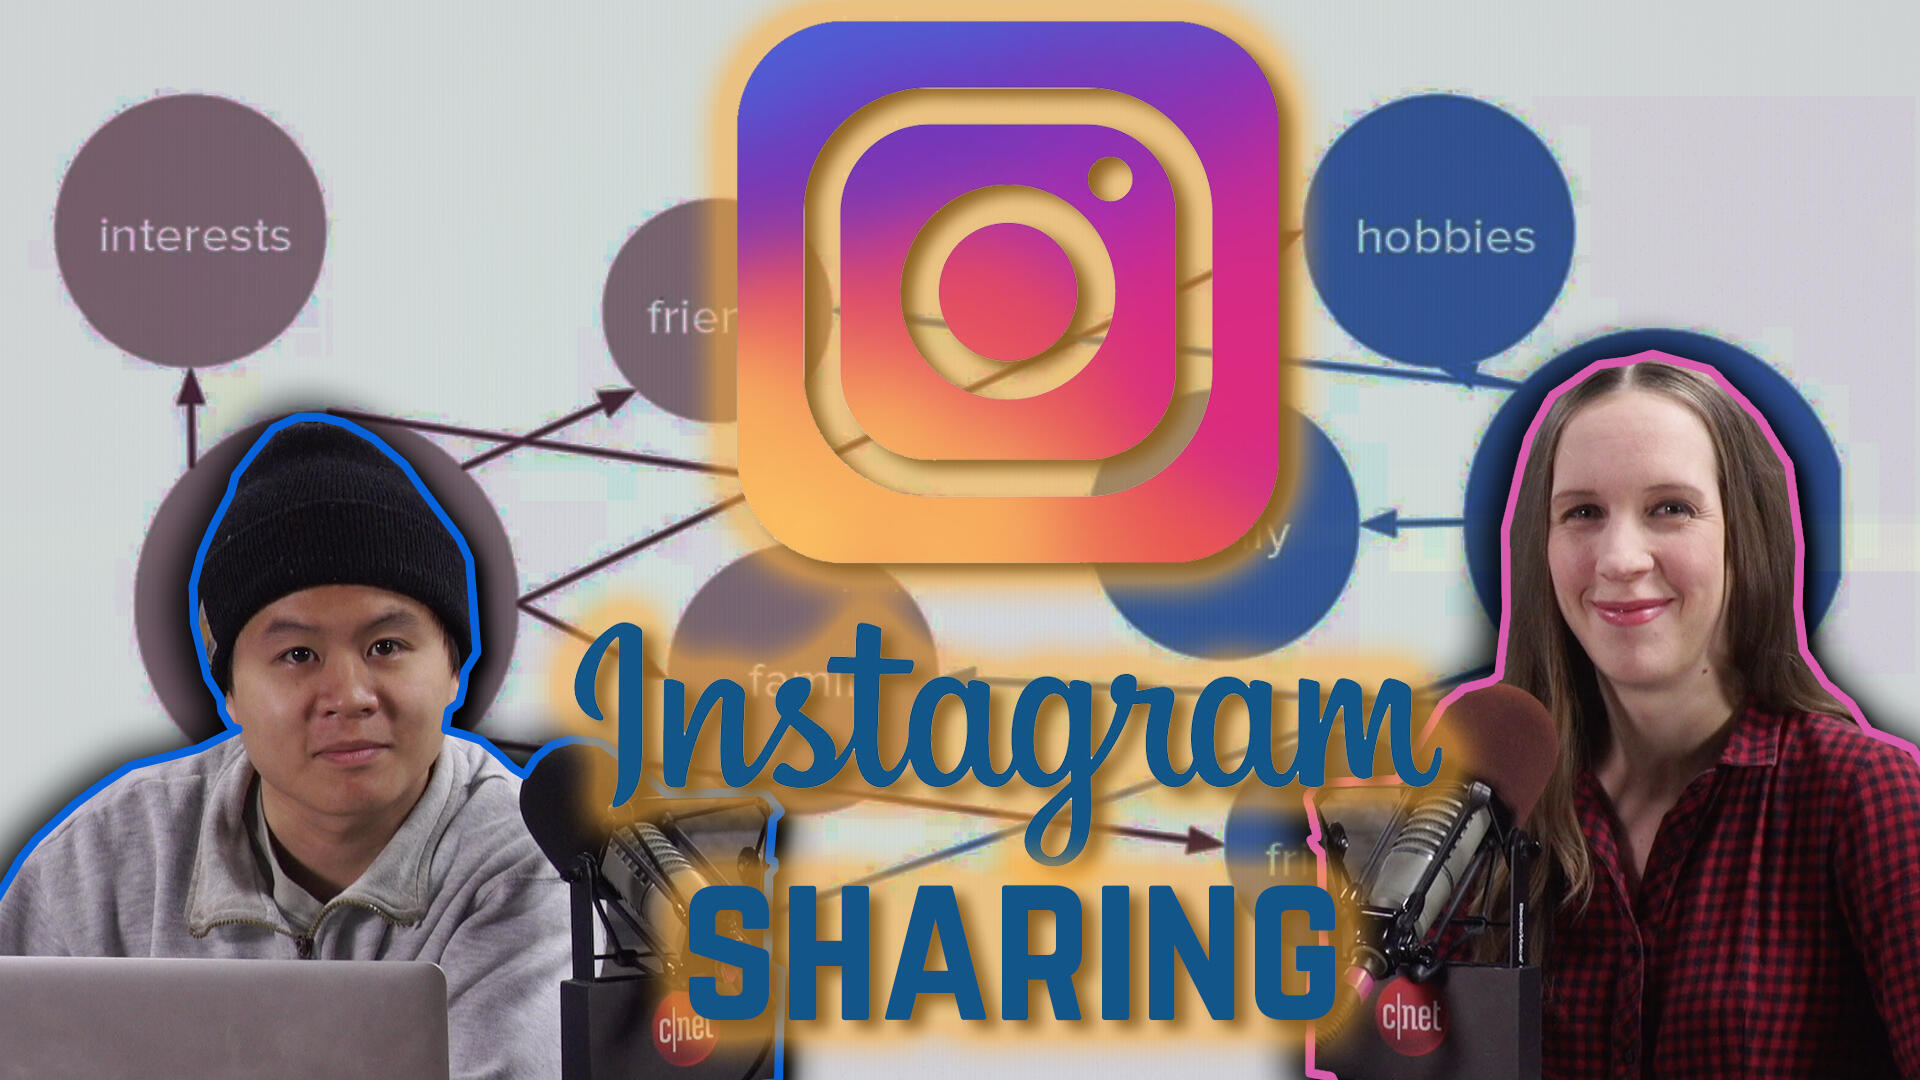 Video: Tired of being tracked online, teens figured out a way to fool Instagram